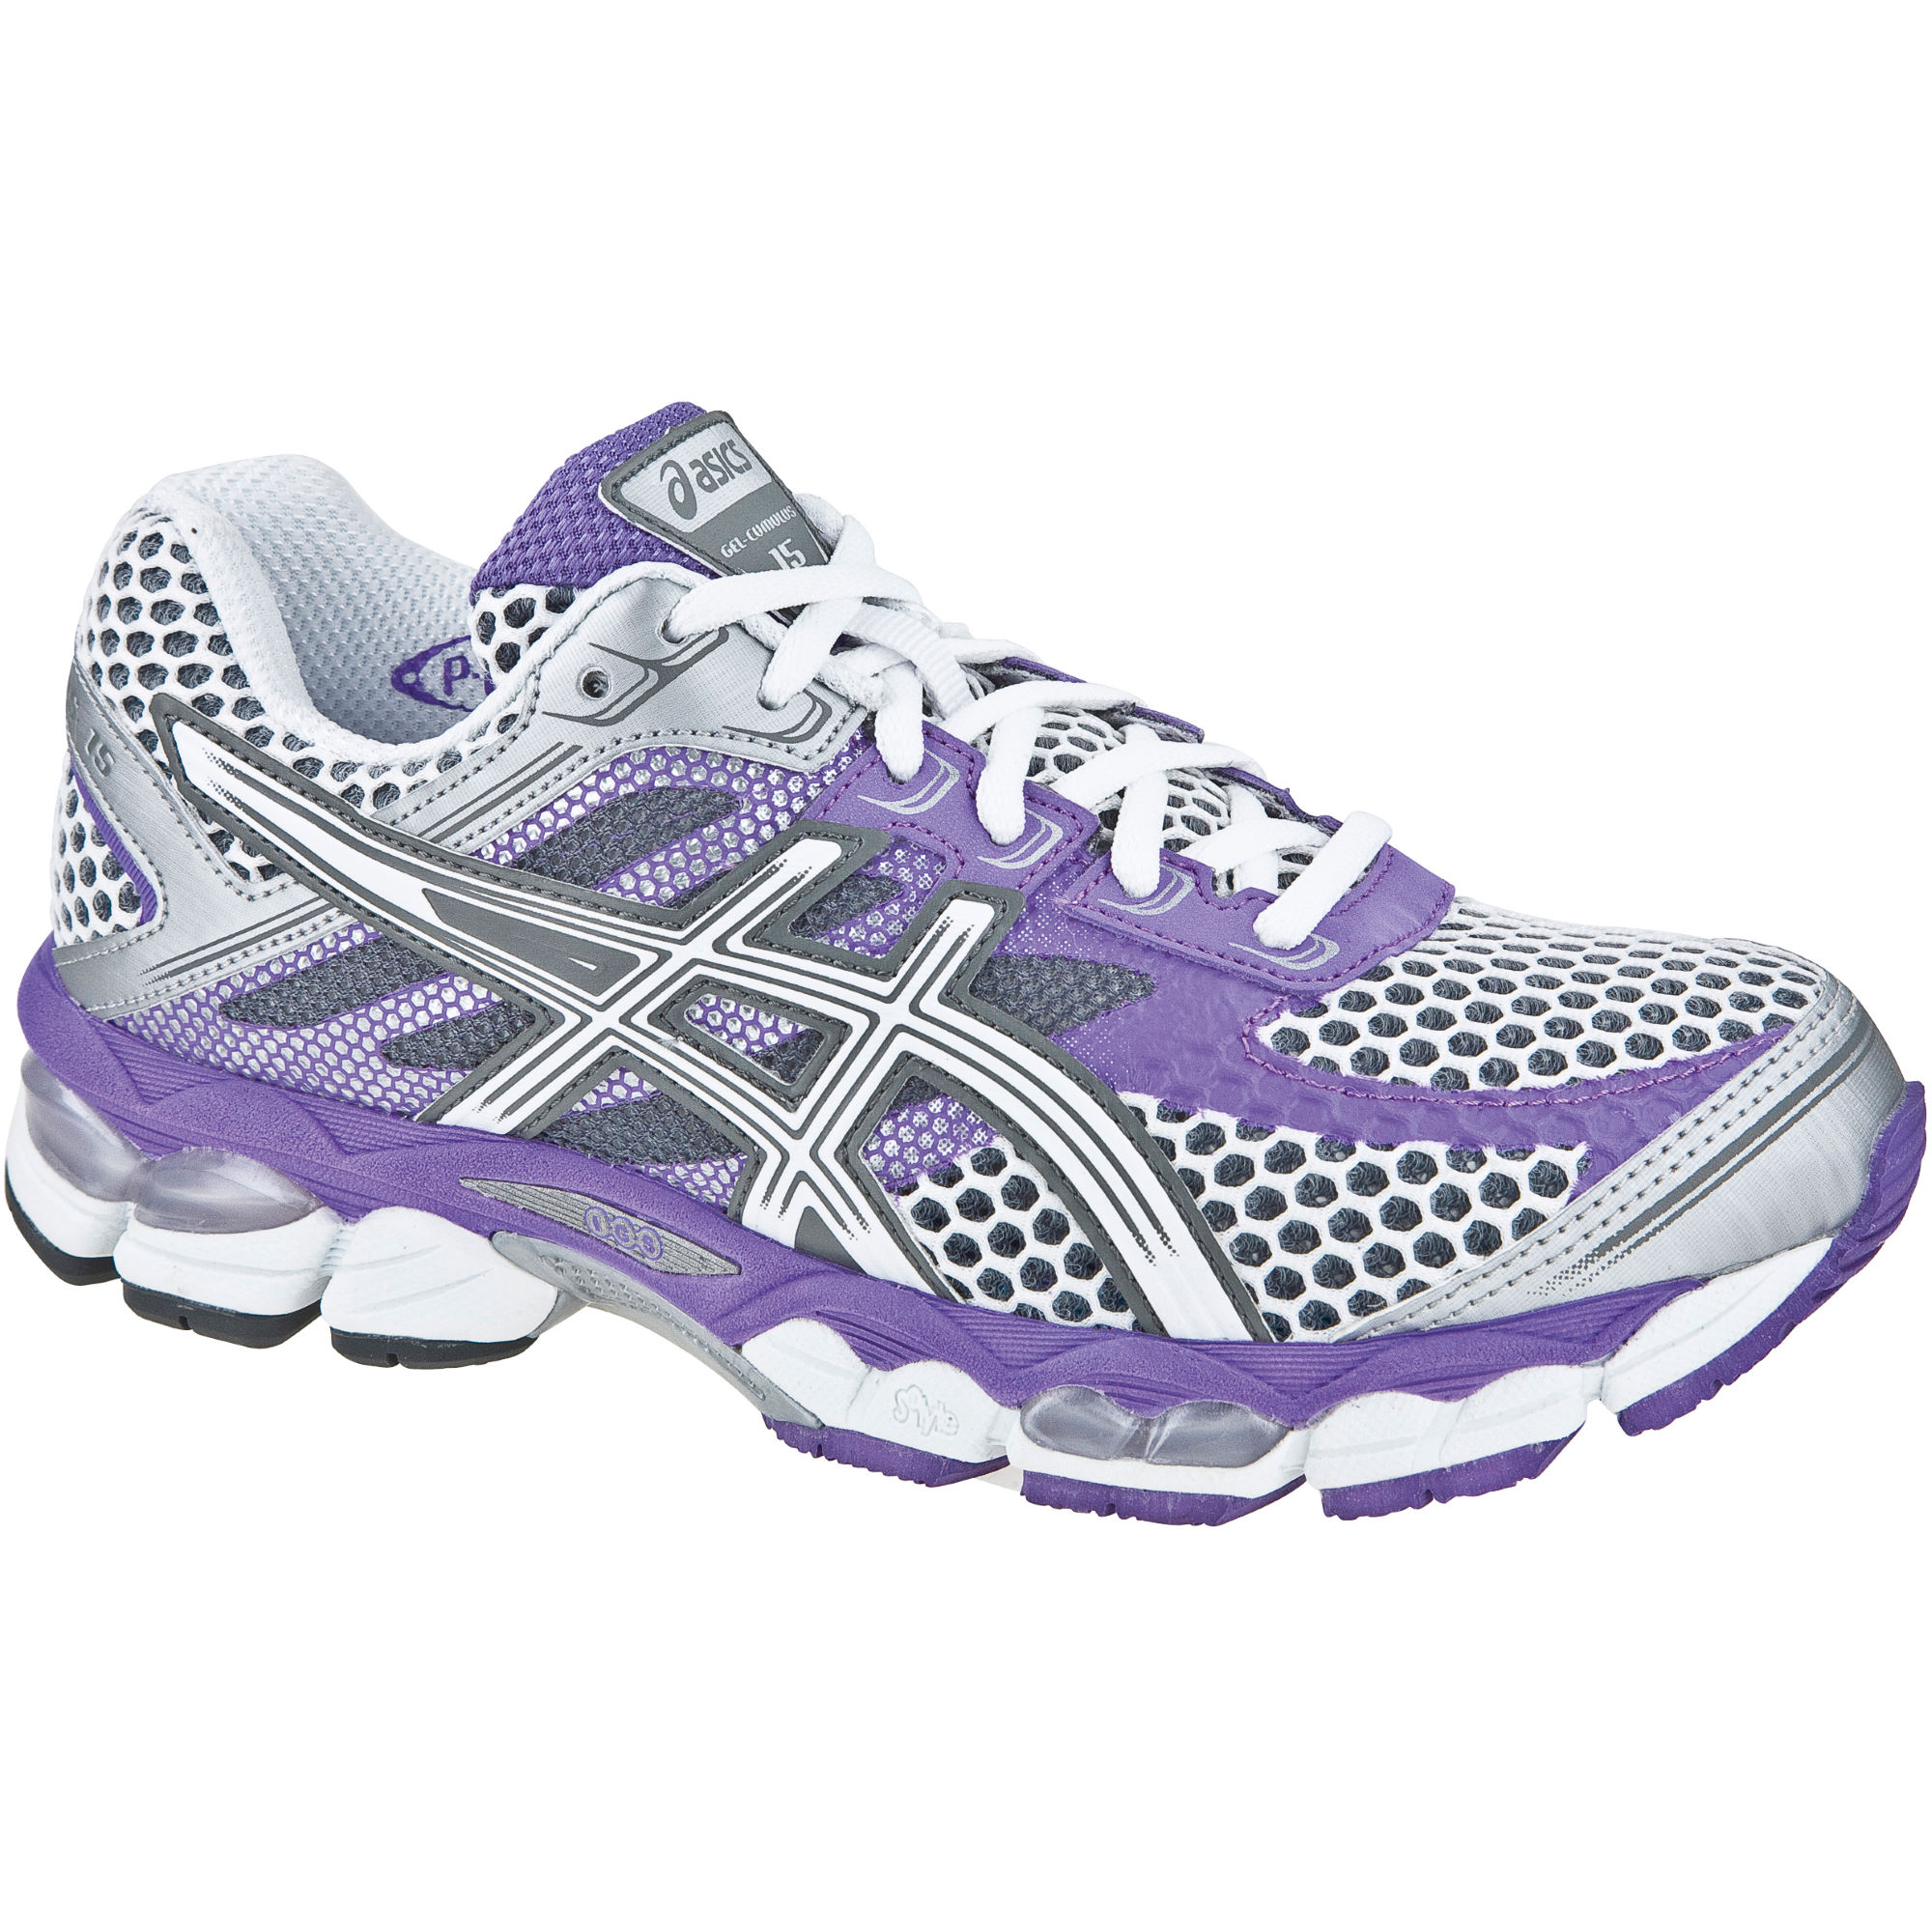 asics gel-cumulus 15 womens running shoes size 6